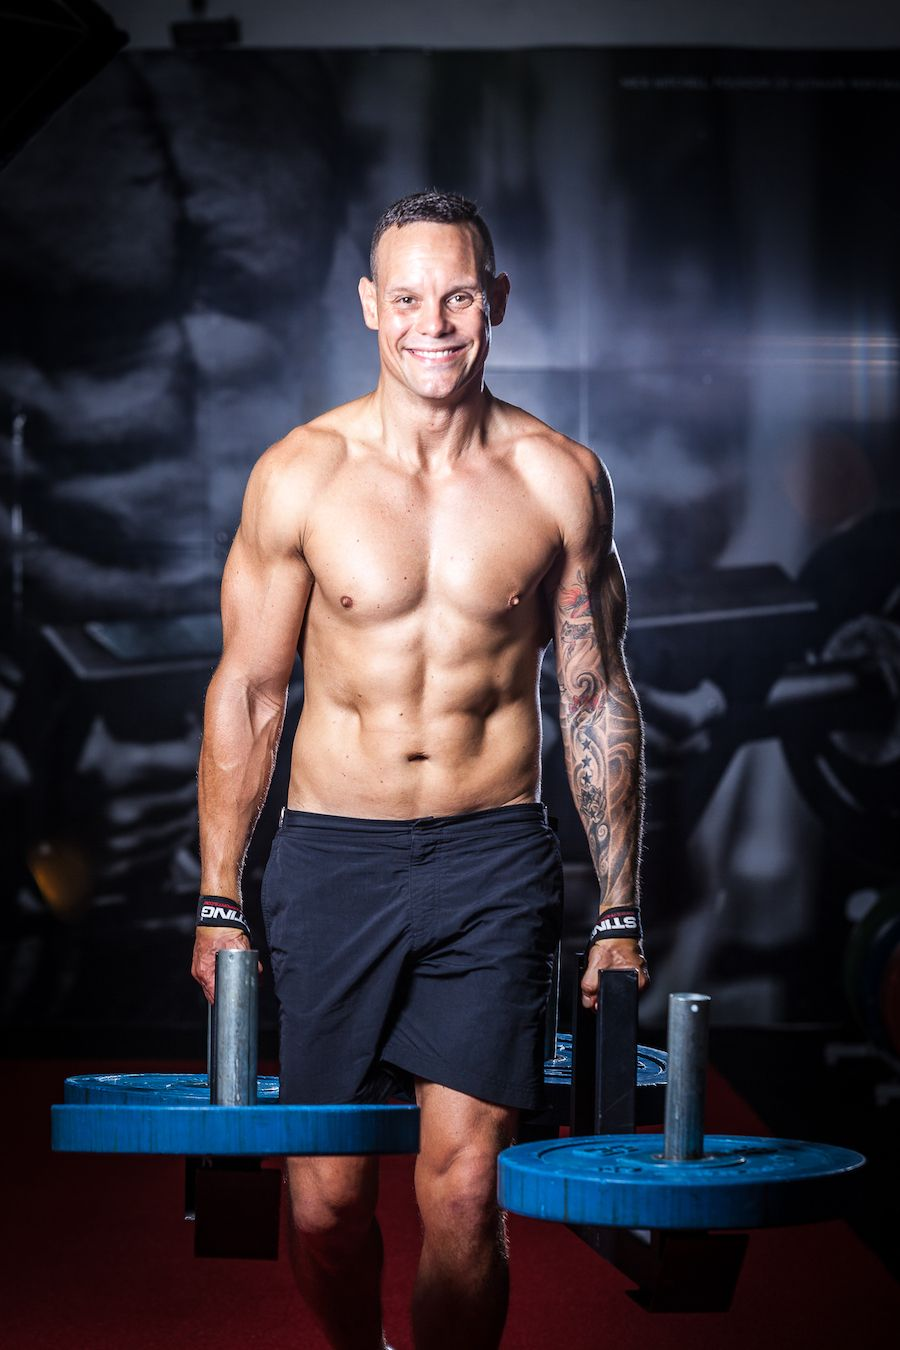 Rob S farmers walks - Client of the Month